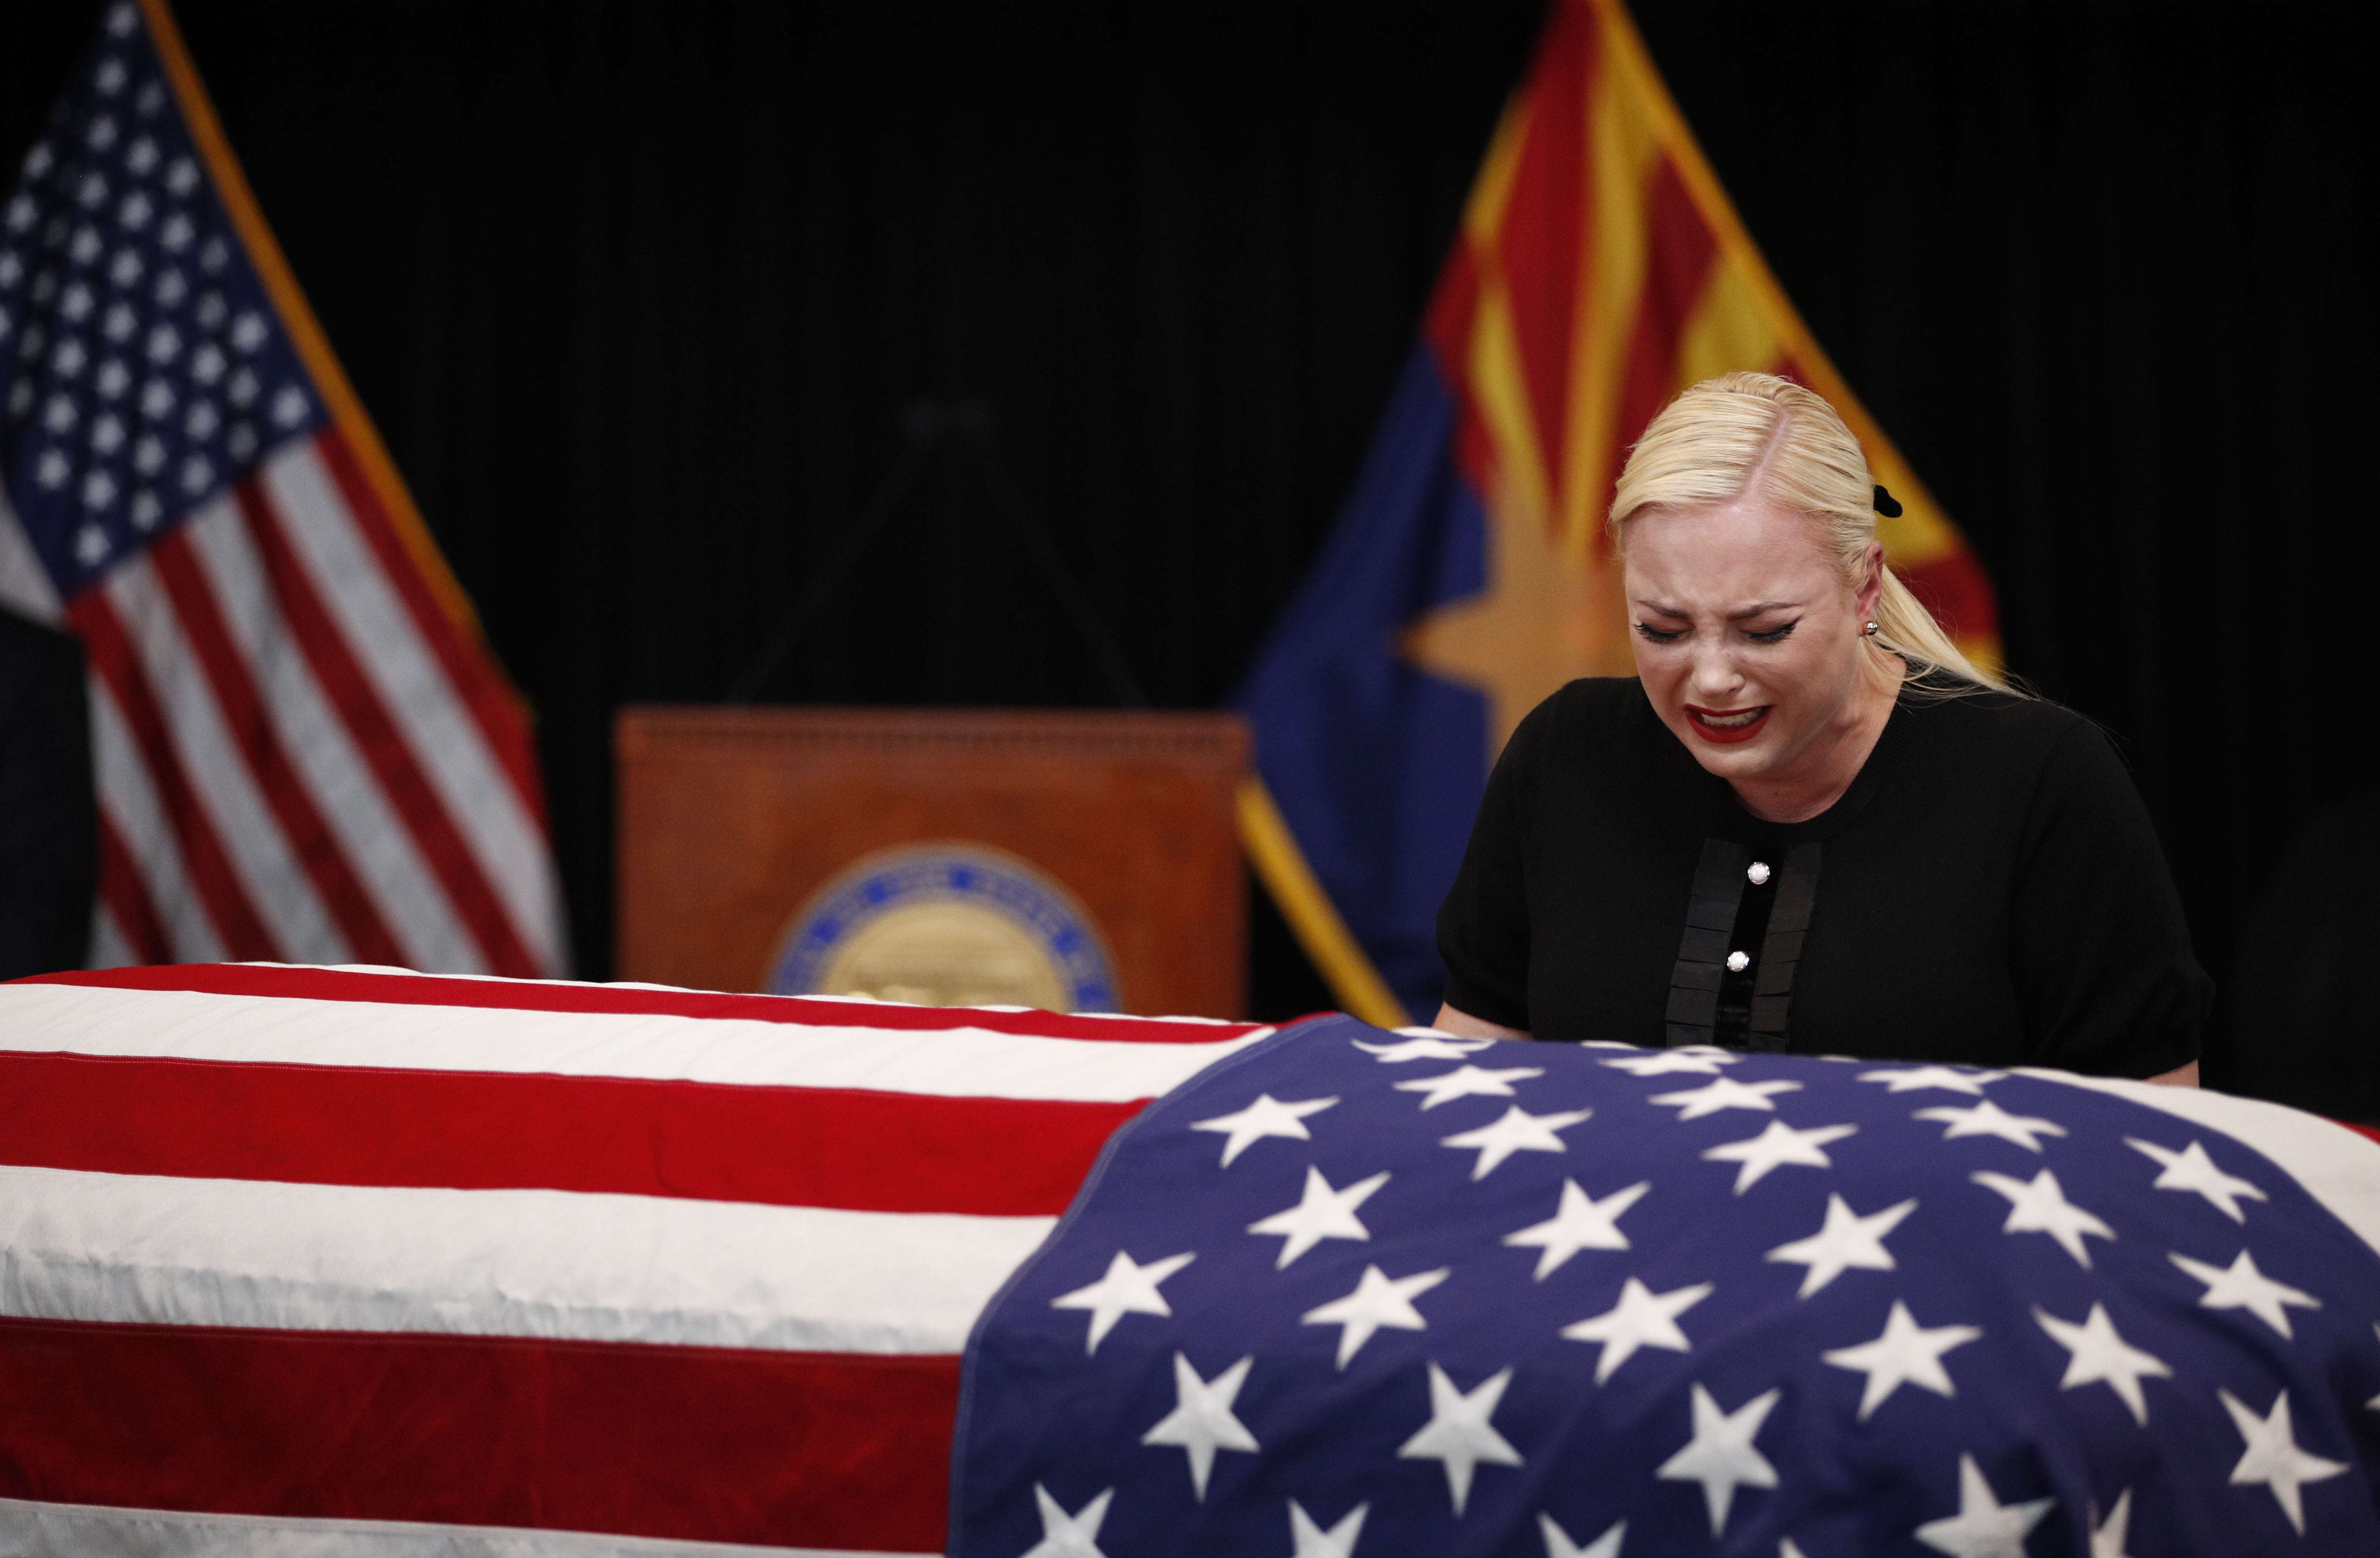 Meghan McCain, daughter of Sen. John McCain, touches the casket during a memorial service at the Arizona Capitol on August 29, 2018, in Phoenix, Arizona. John McCain will lie in state at the Arizona State Capitol before being transported to Washington D.C. where he will be buried at the U.S. Naval Academy Cemetery in Annapolis. Sen. McCain, a decorated war hero, died August 25 at the age of 81 after a long battle with Glioblastoma, a form of brain cancer. (Getty Images)